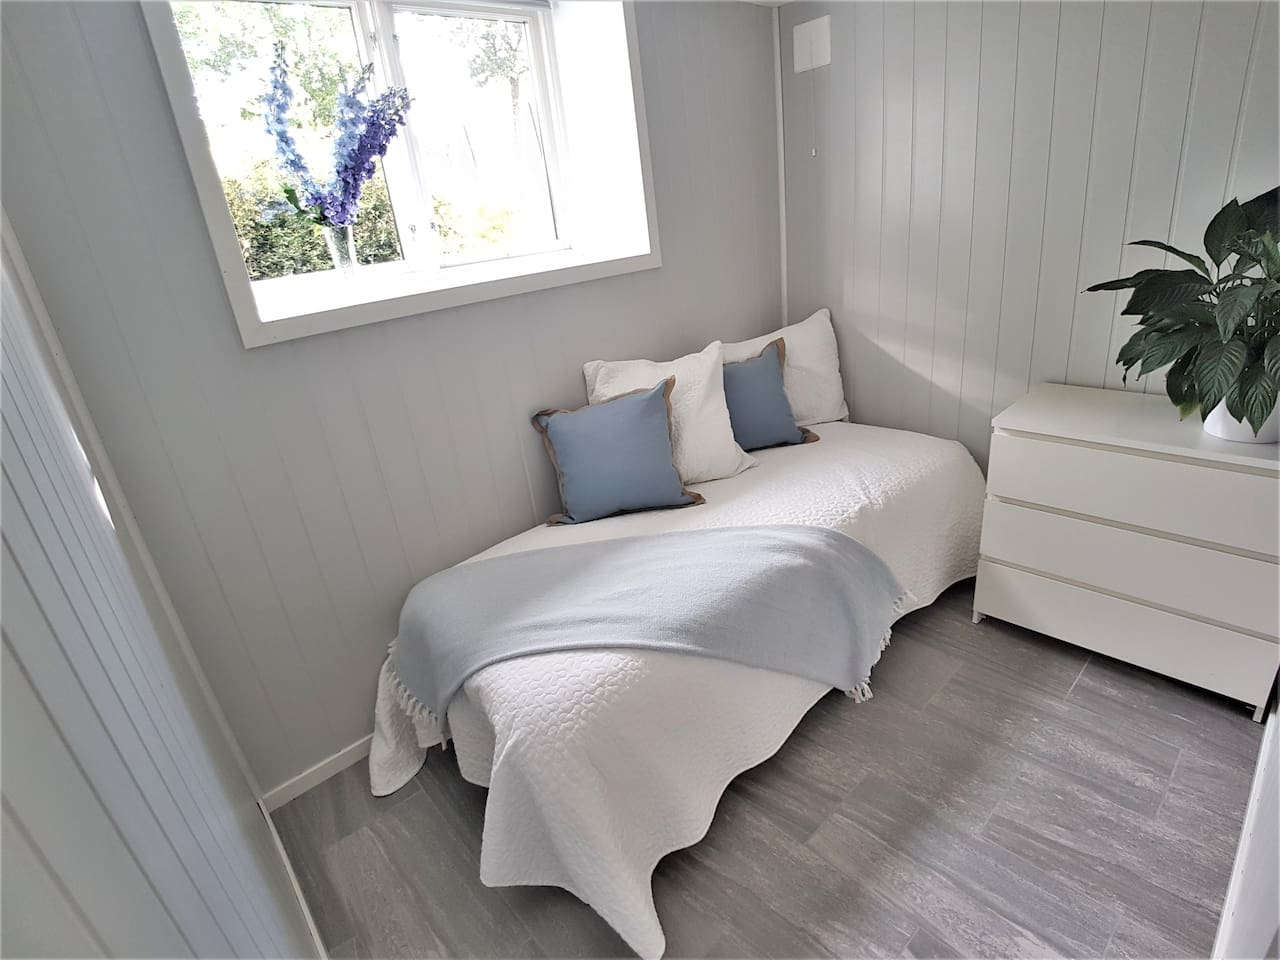 bedroom with 1 single bed